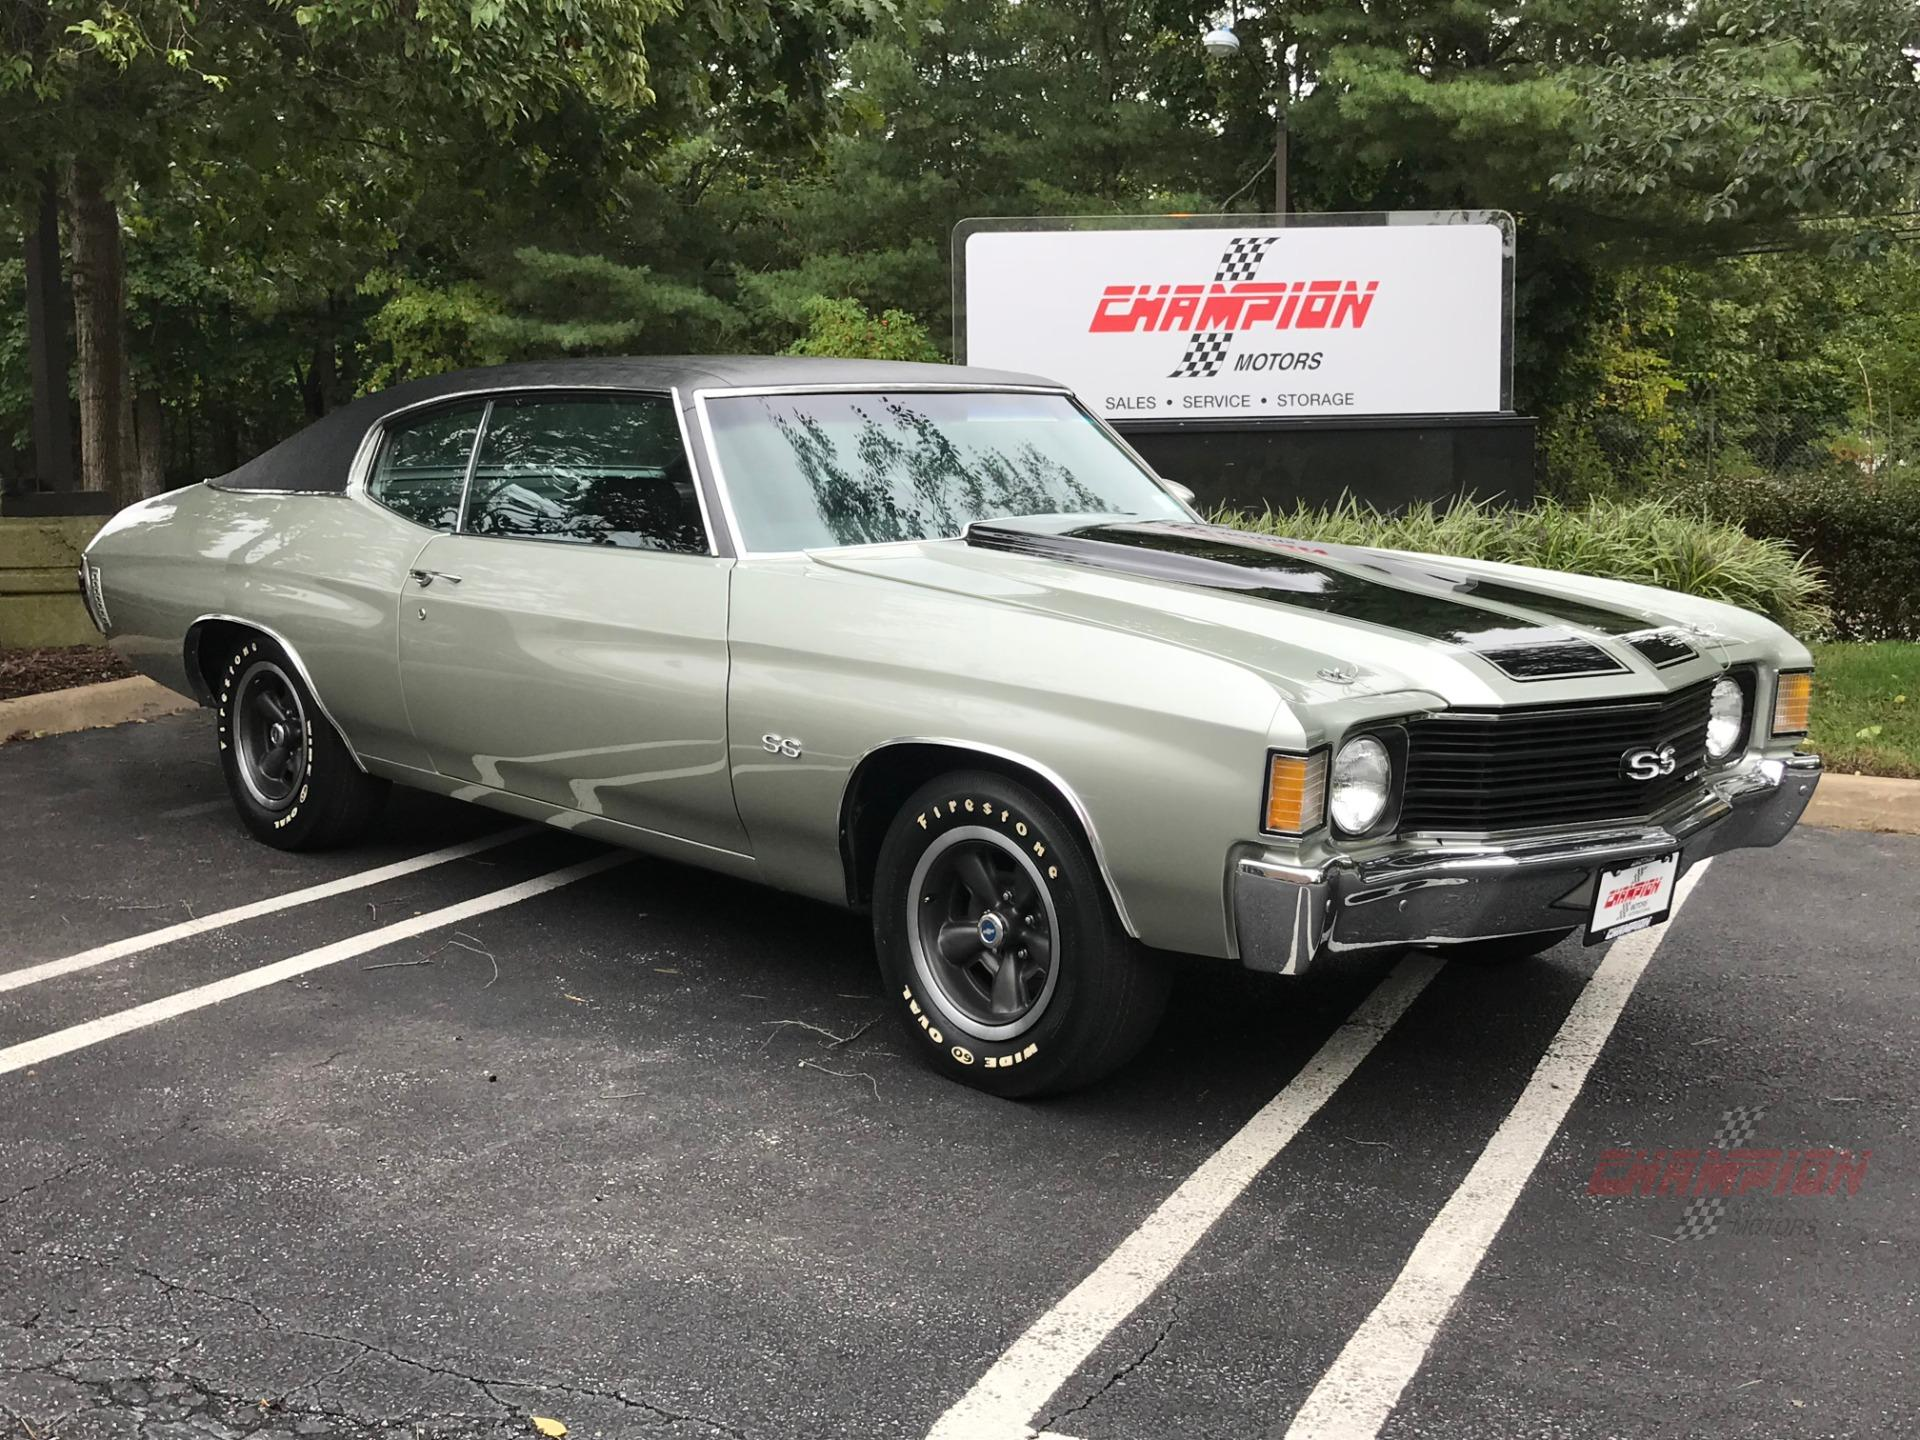 New Chevelle Ss >> 1972 Chevrolet Chevelle Ss Champion Motors International L Luxury